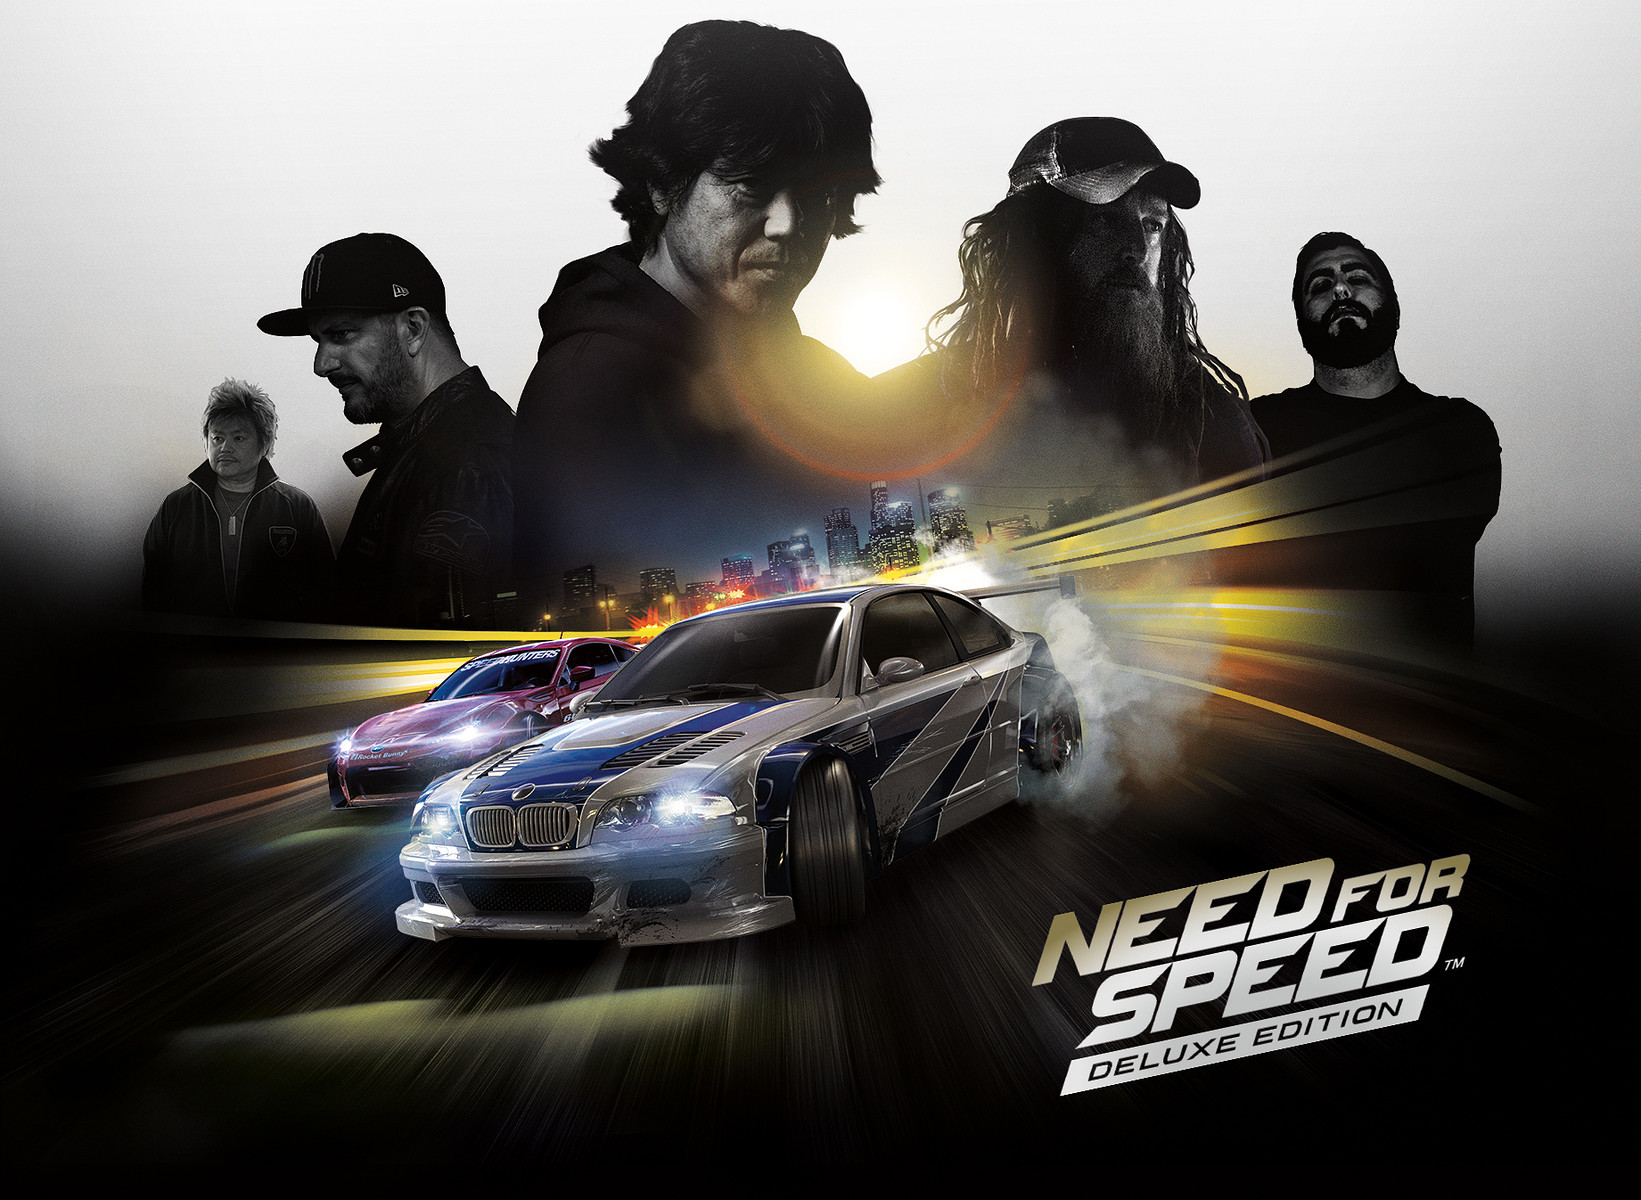 Icons // Need For Speed Deluxe Edition 2015